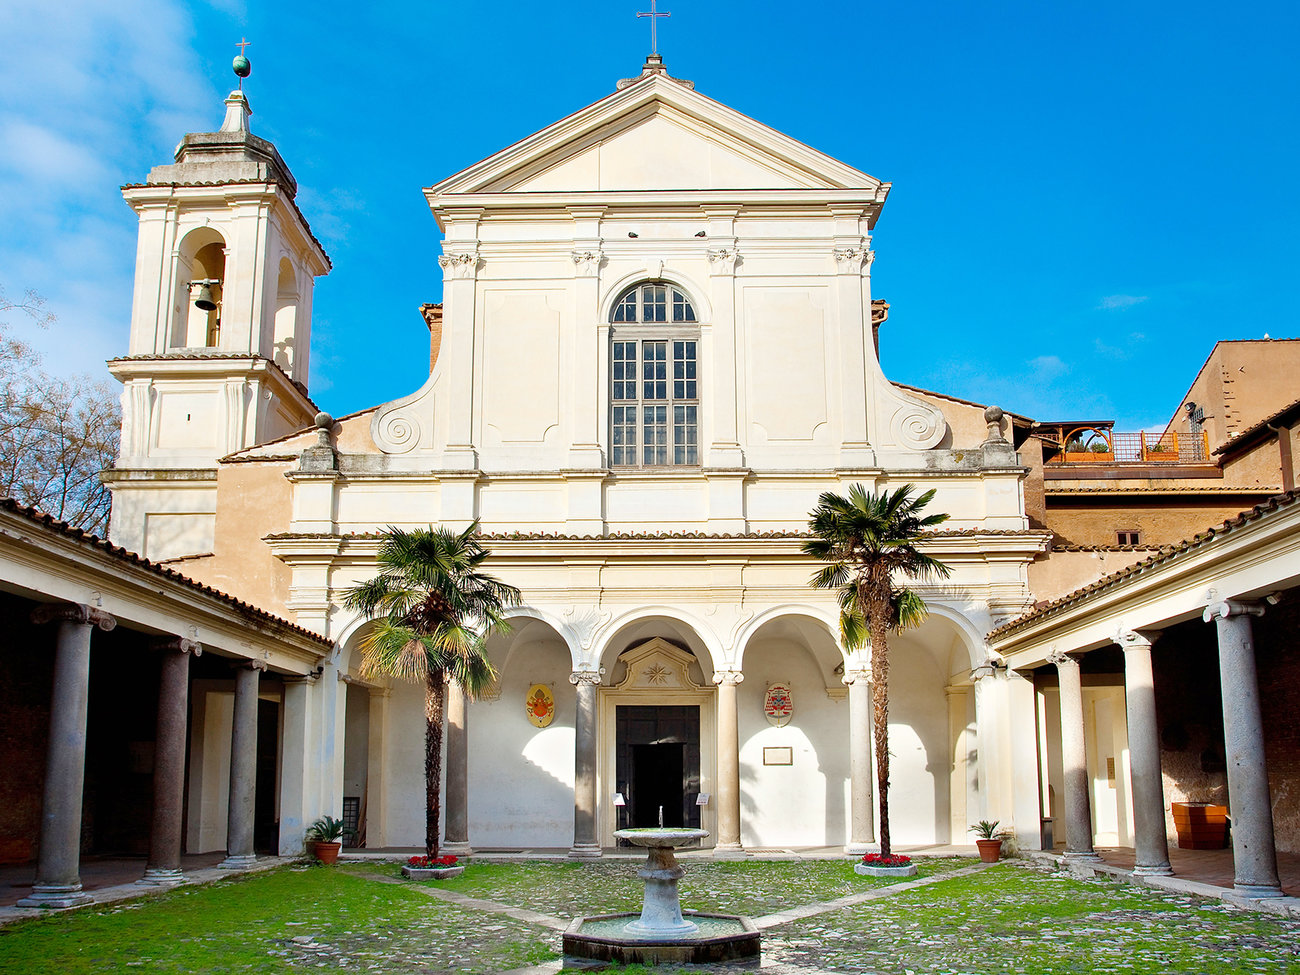 Basilica of San Clemente Church in Rome